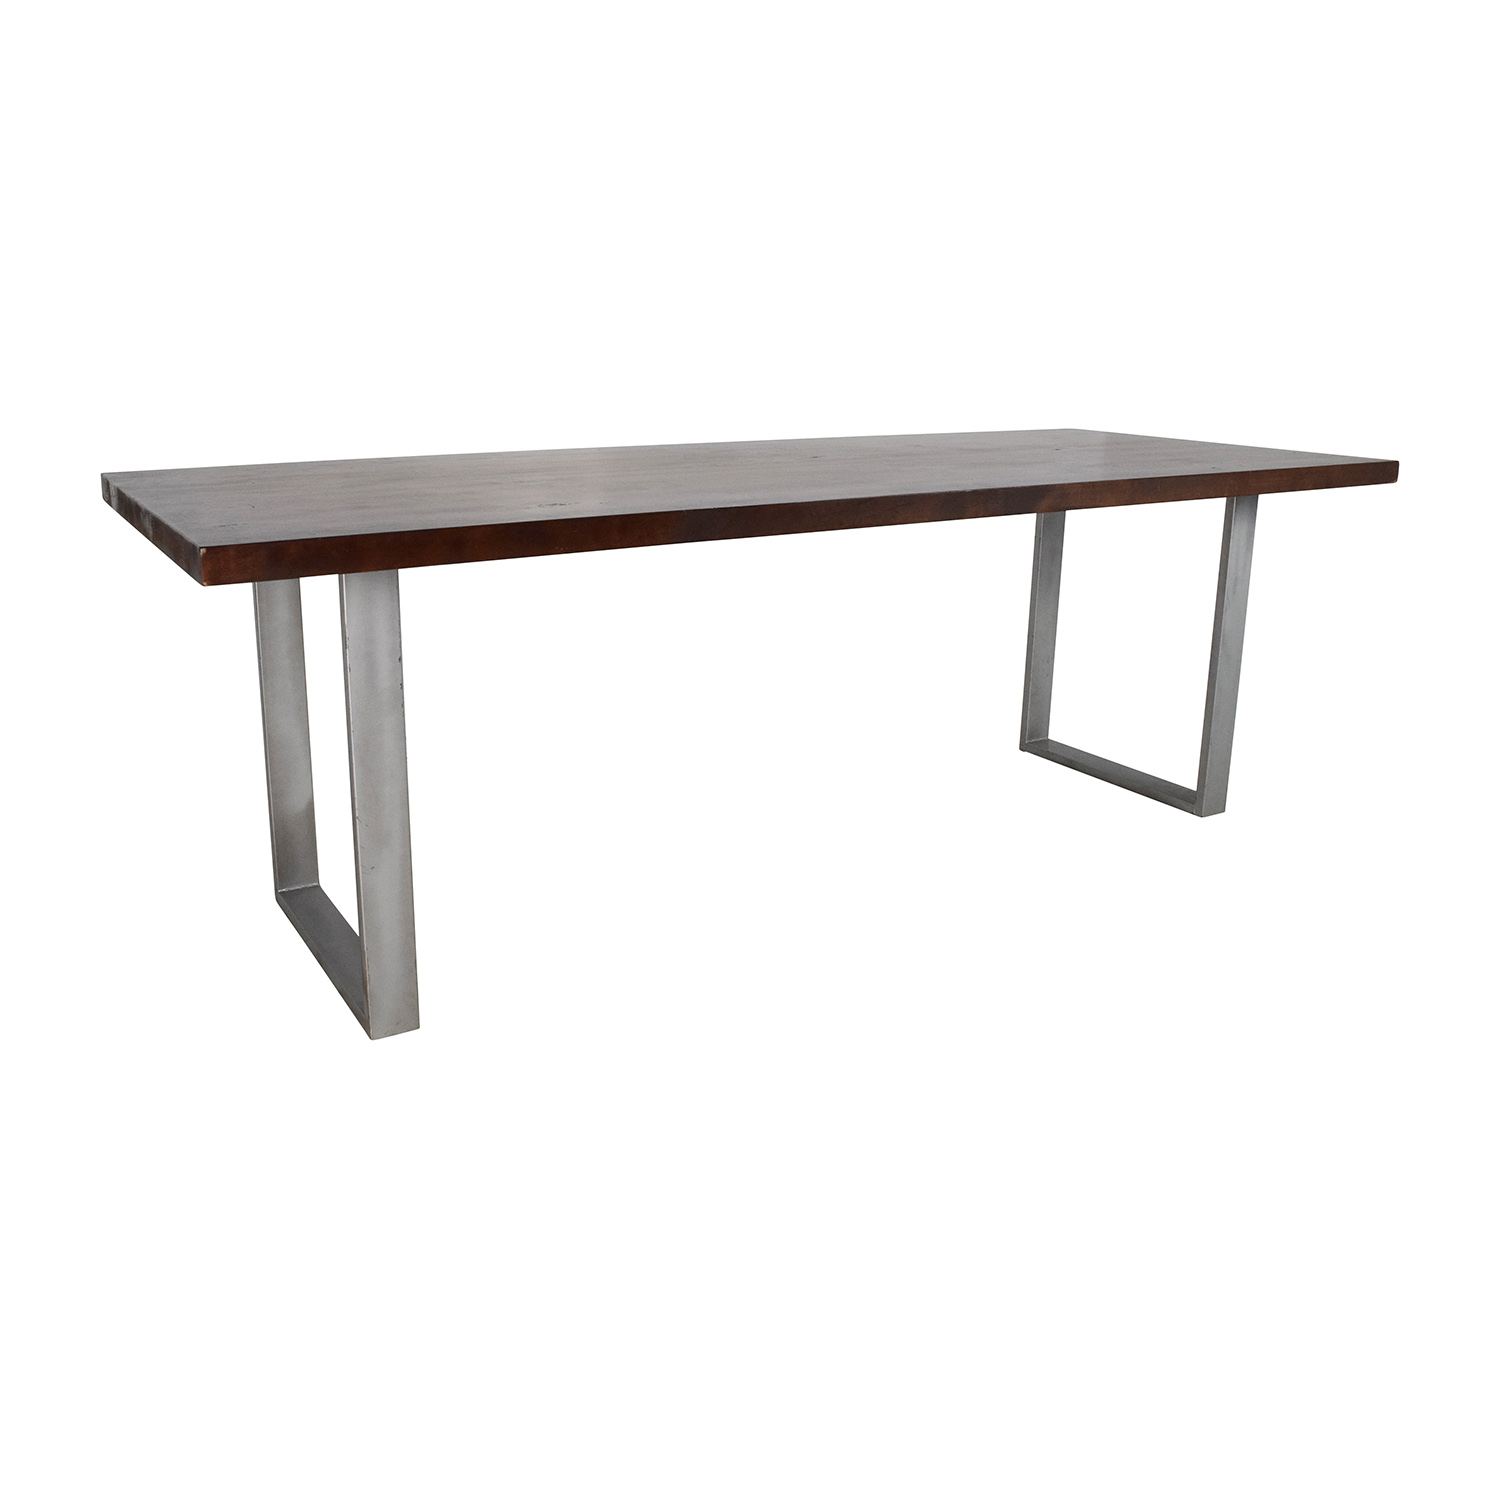 Modern Solid Wood Dining Table dimensions